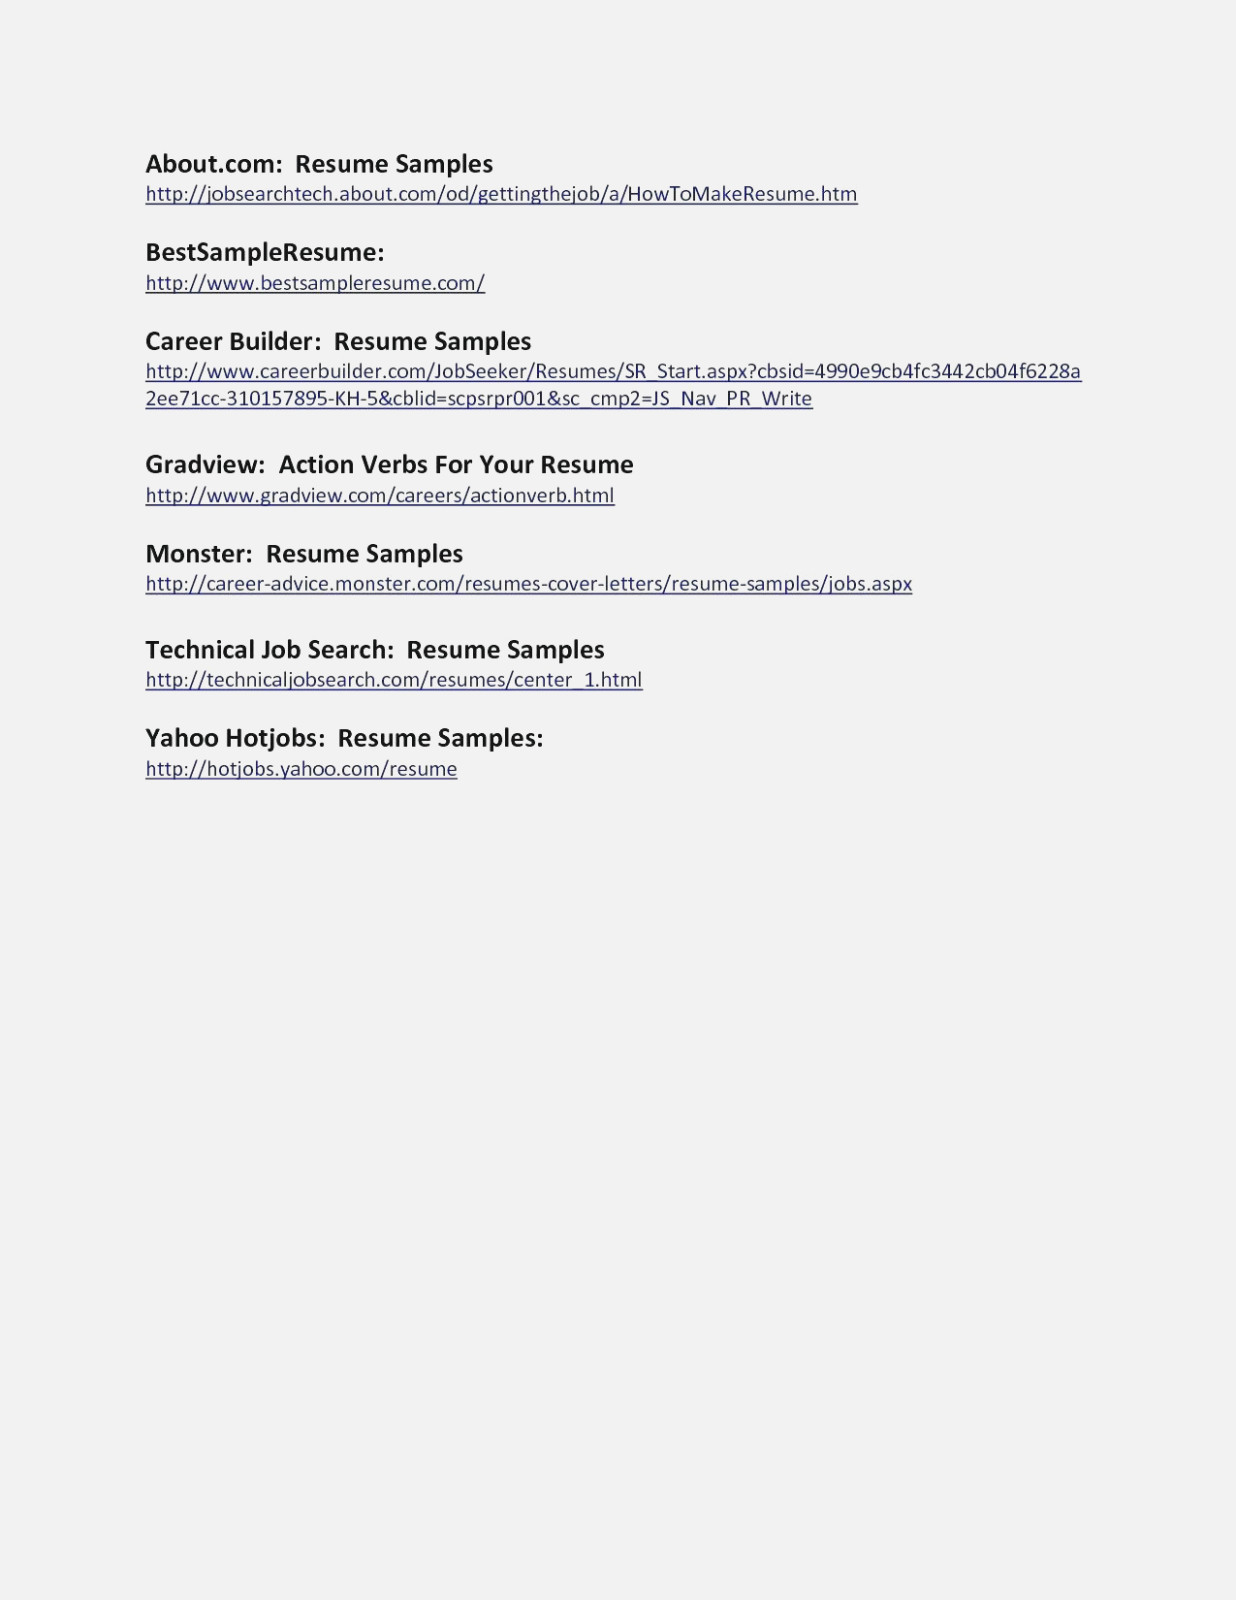 Best Place to Post Resume Online - where to Post Resume Line Unique Got Resume Builder Unique Lovely